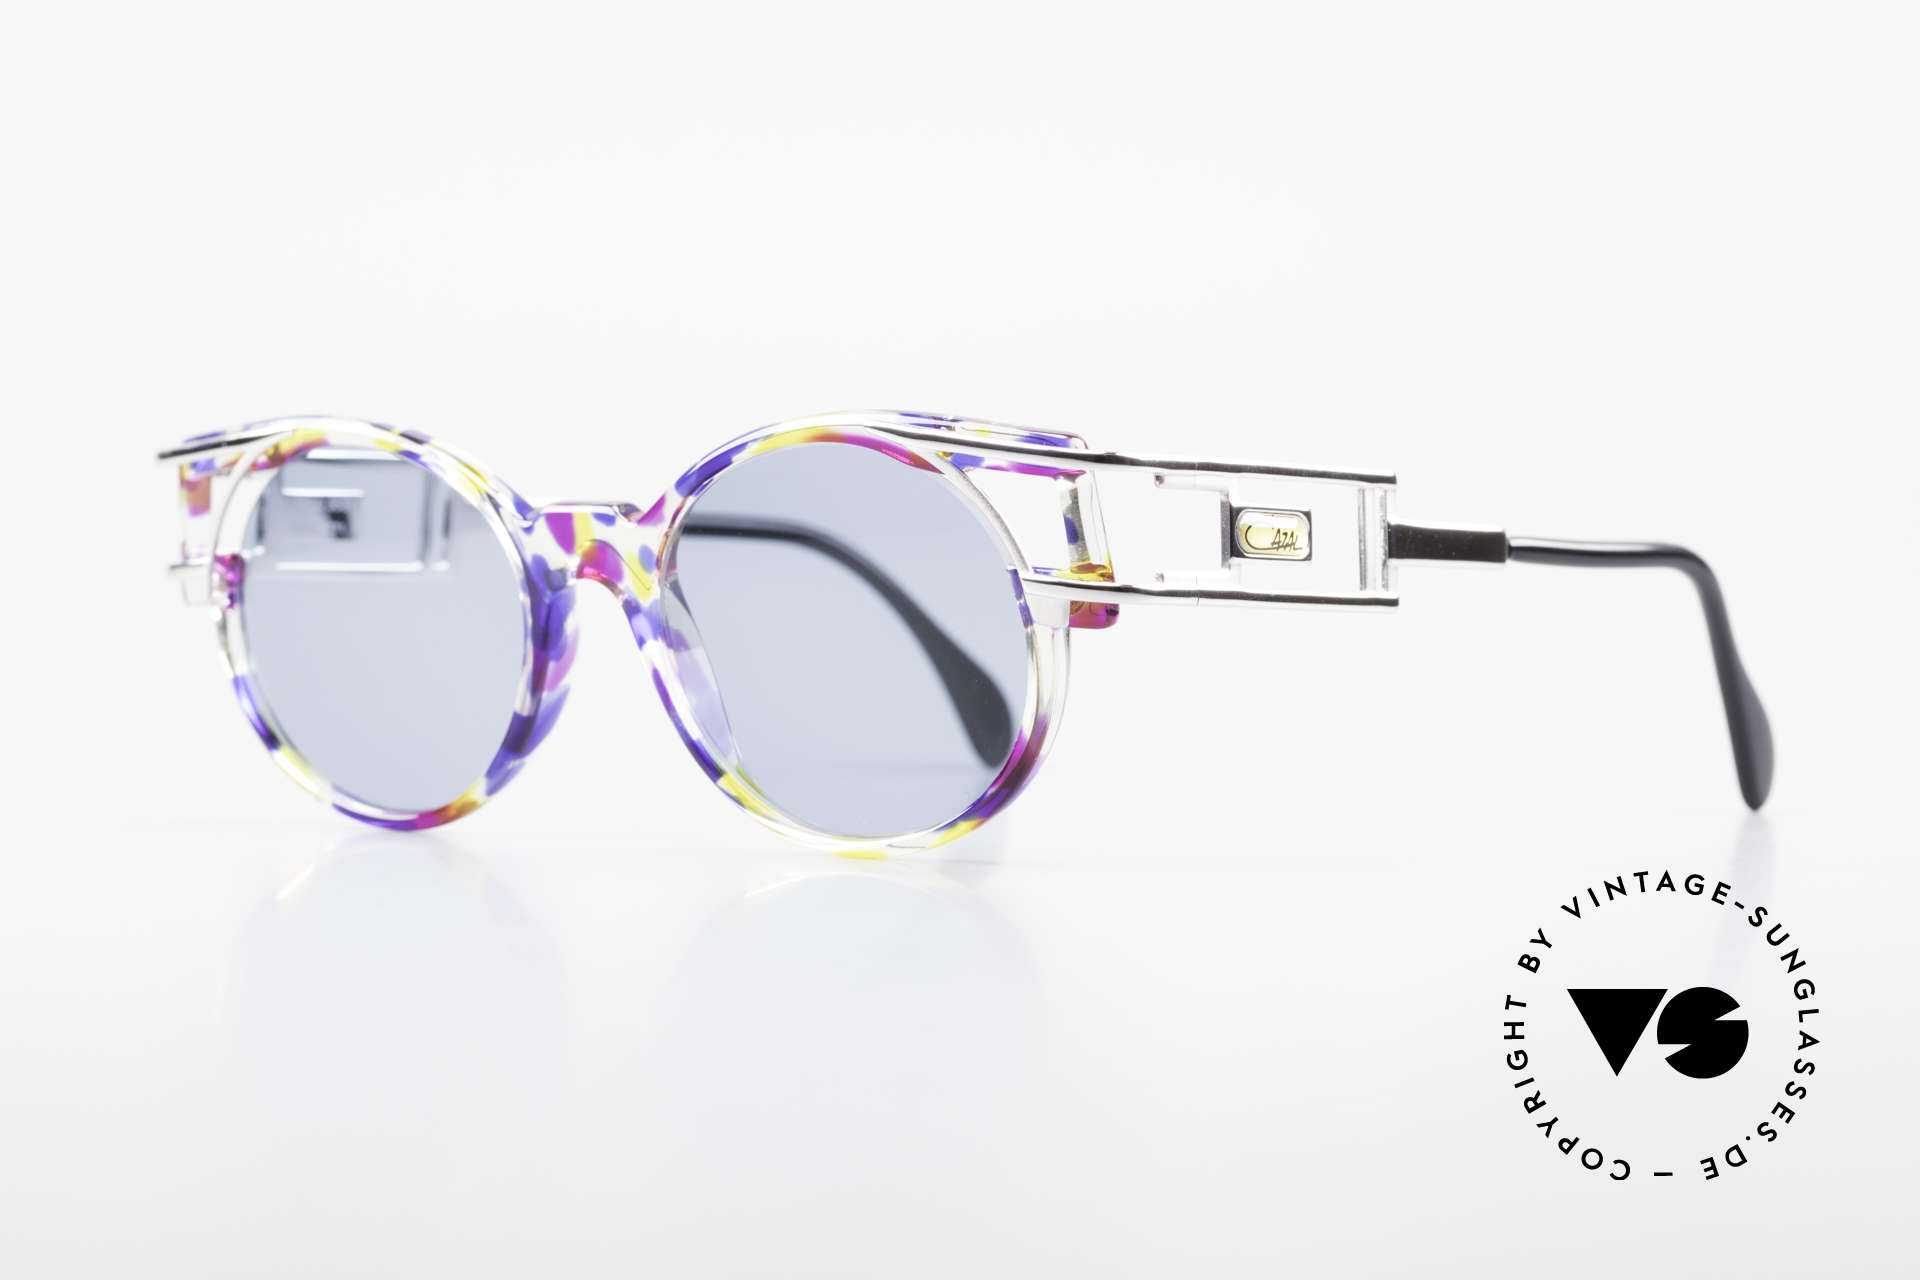 Cazal 353 Old School Hip Hop Shades 90s, temple design is identical to the legendary Cazal 958, Made for Men and Women